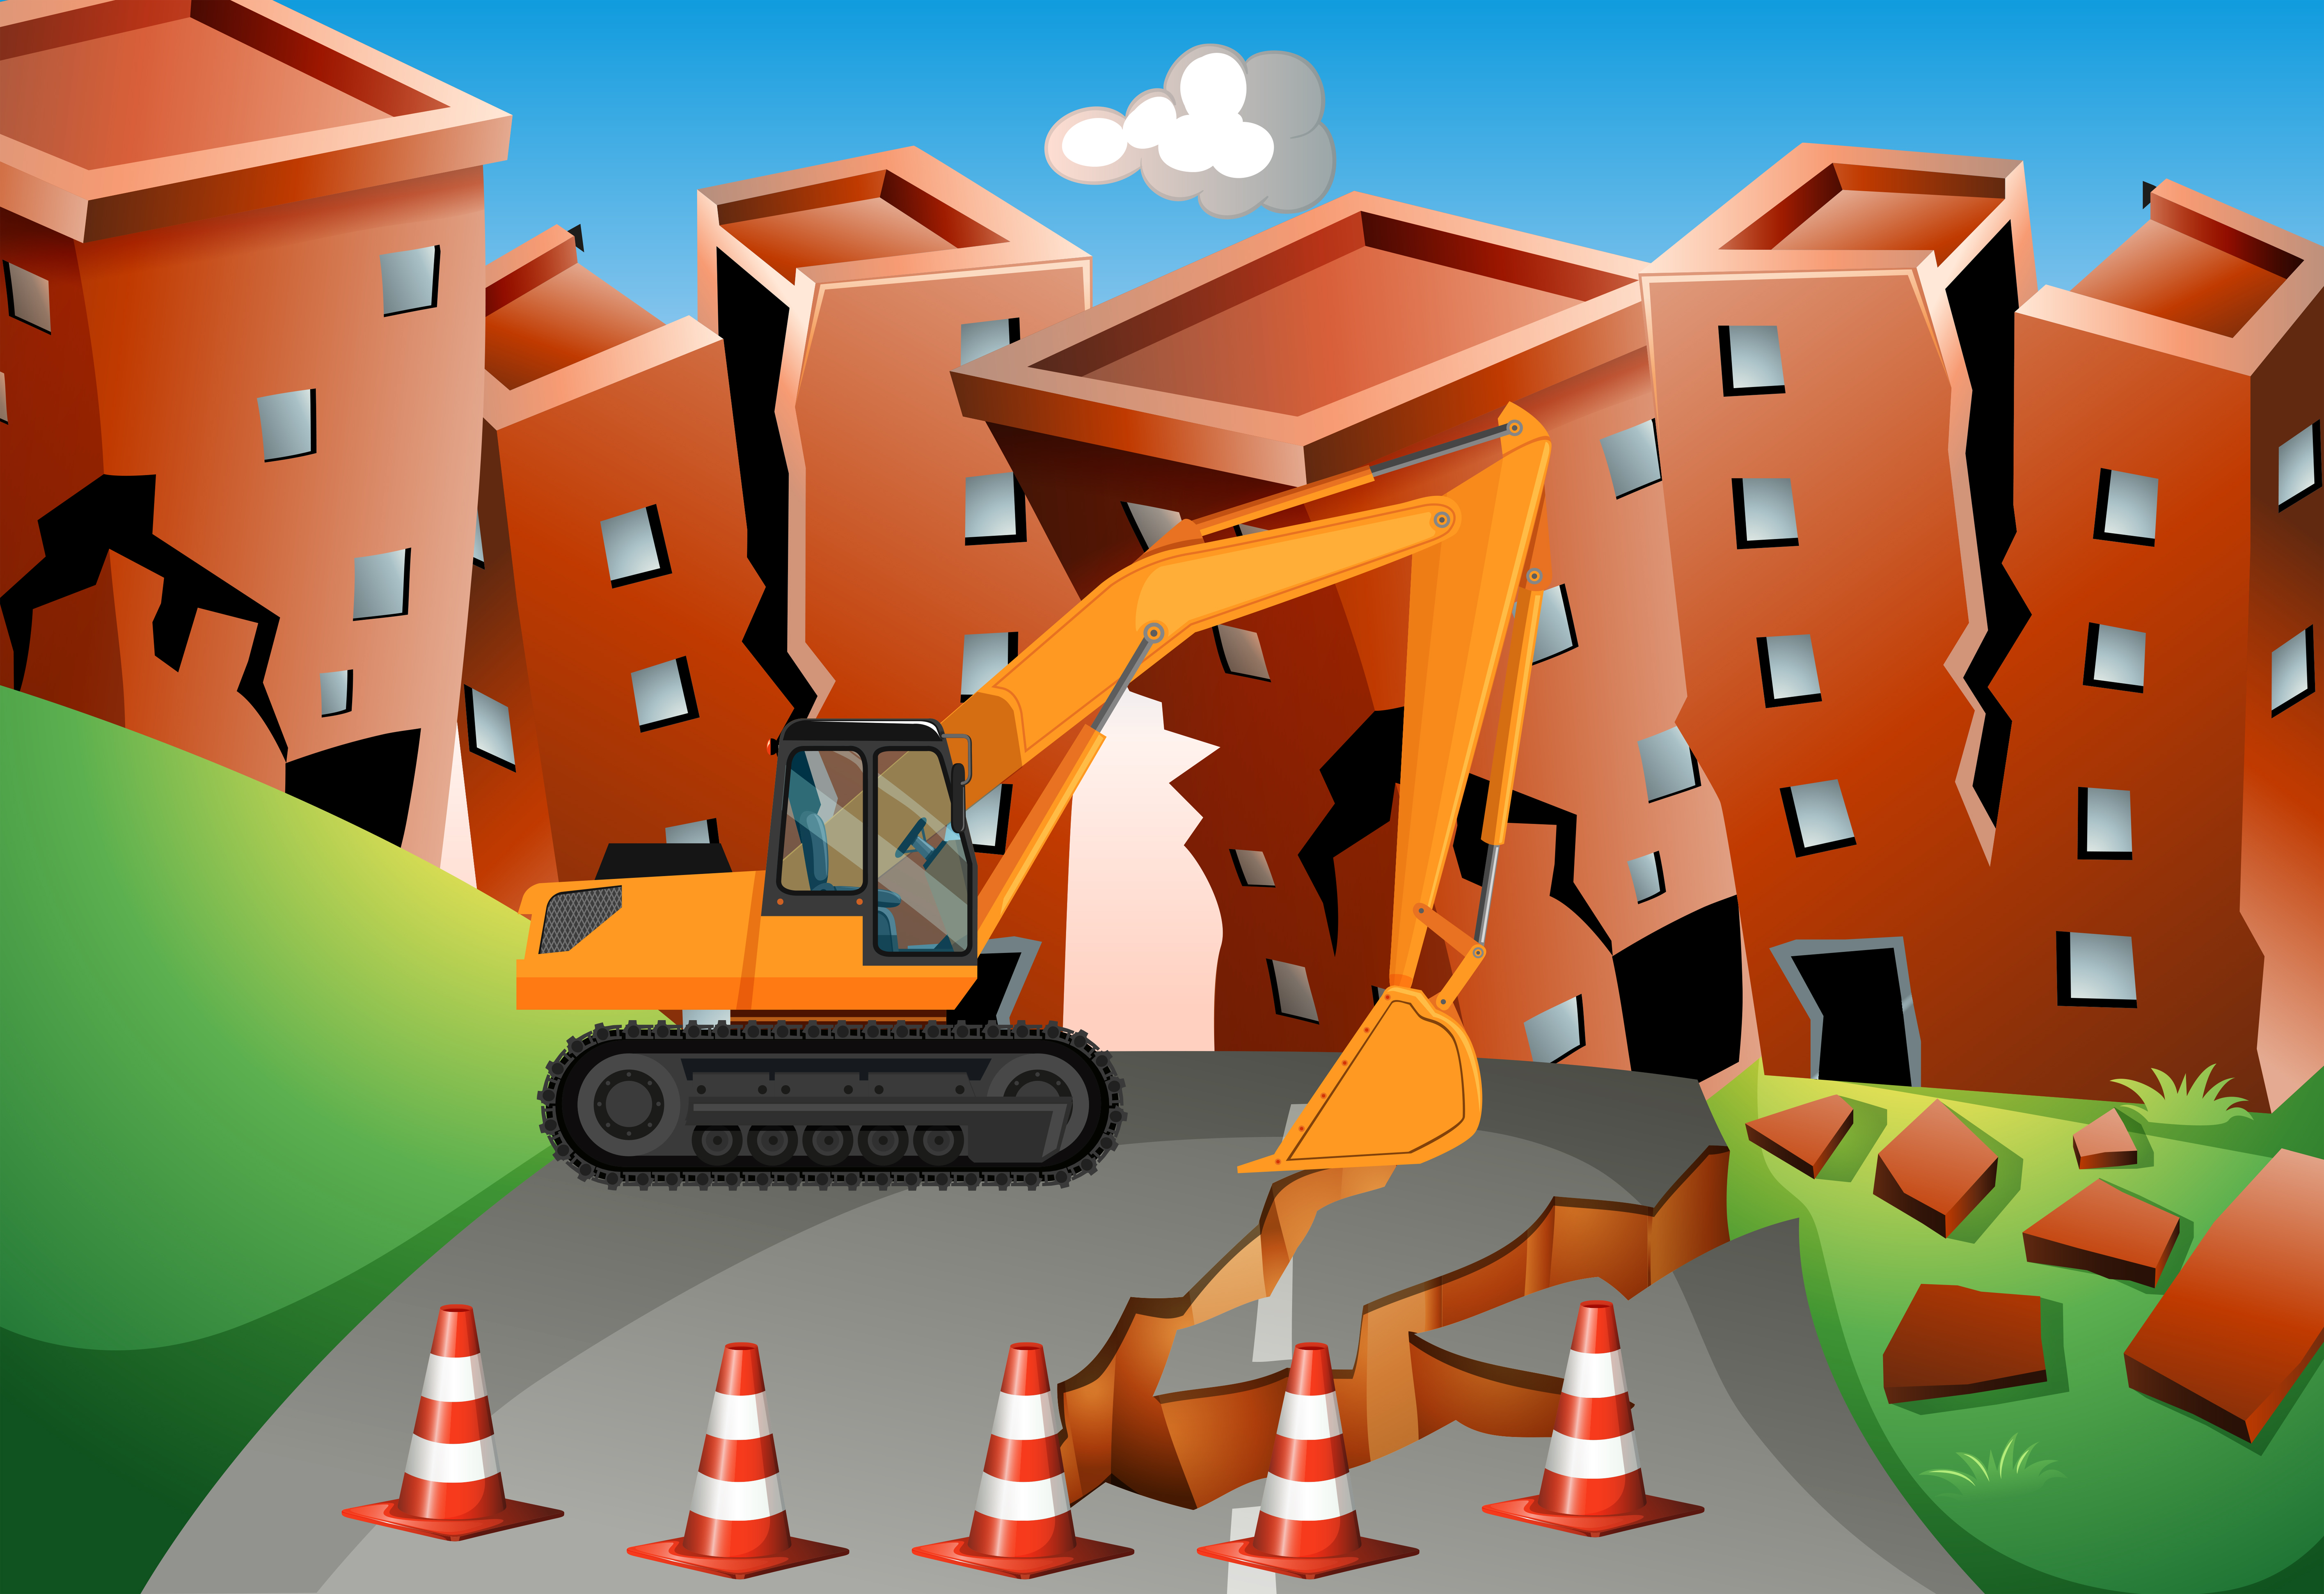 Earthquake Scene With Bulldozer And Buildings Download